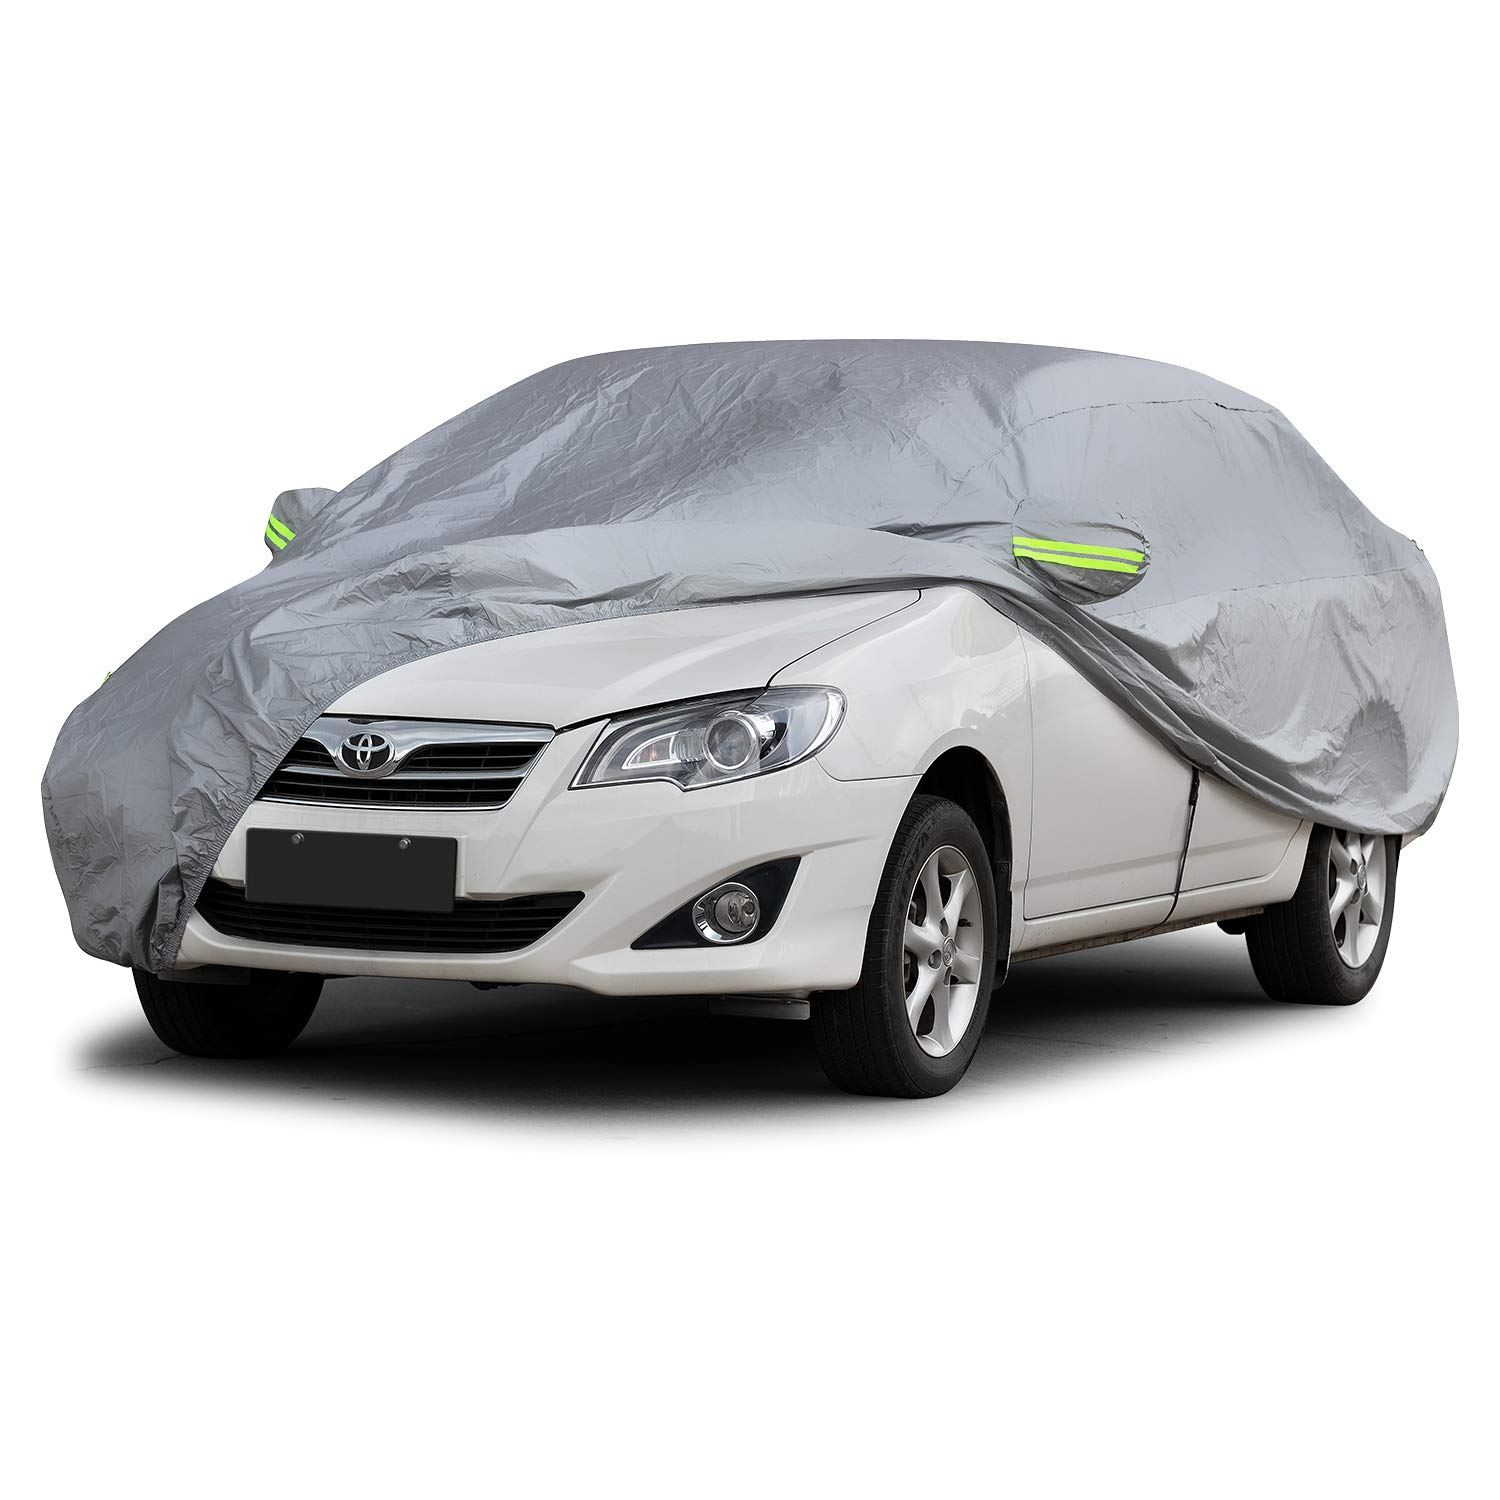 SUV Car Cover Outdoor Indoor Use Dr.Auto Full SUV Cover Snow Shield Sun Block Waterproof Windproof Scratch Resistant SUV-M 183 x 70.8 x66 inch